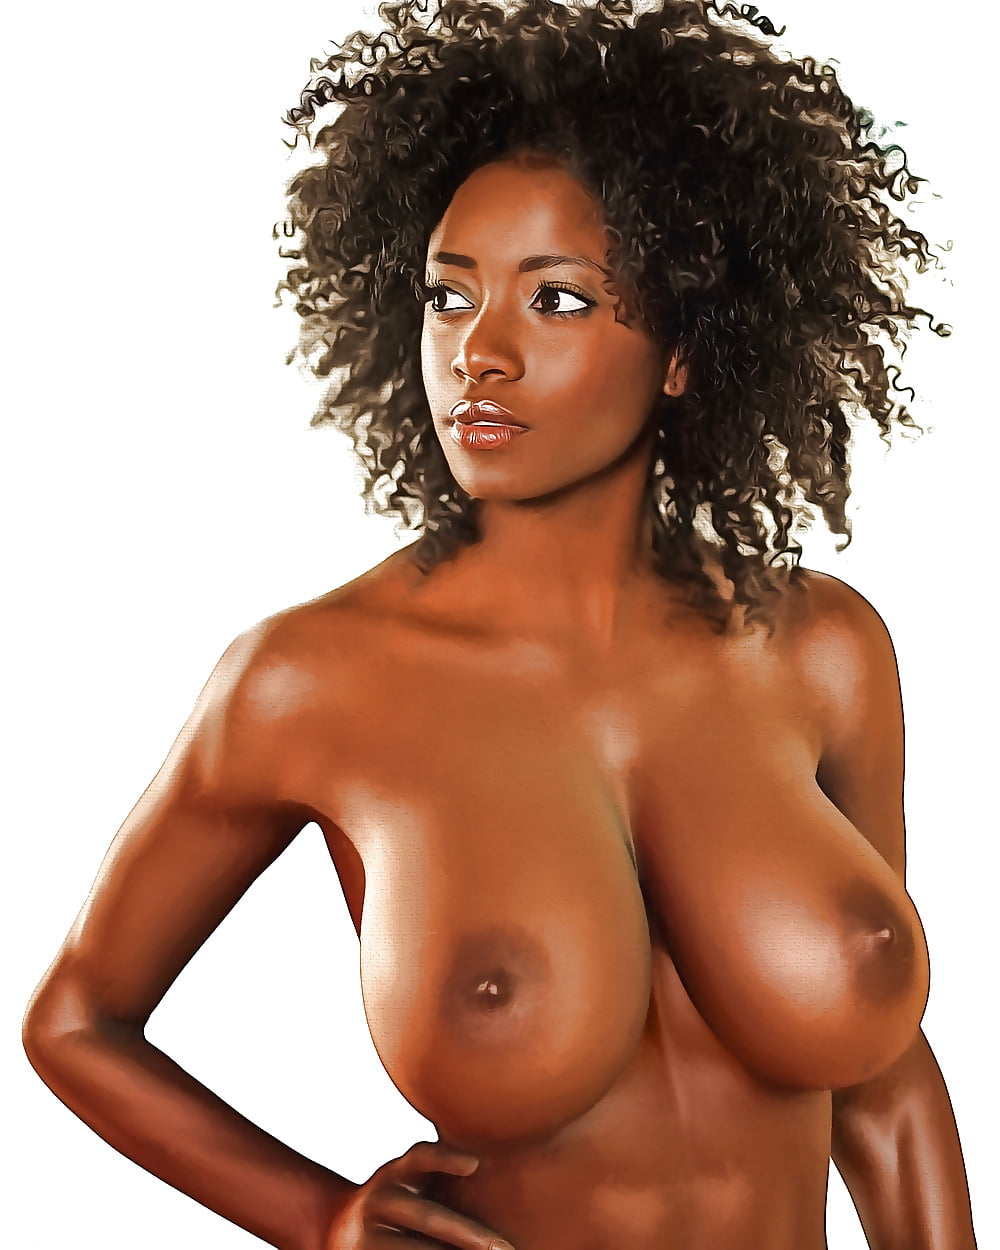 interracial-big-tit-ebony-naked-goa-girls